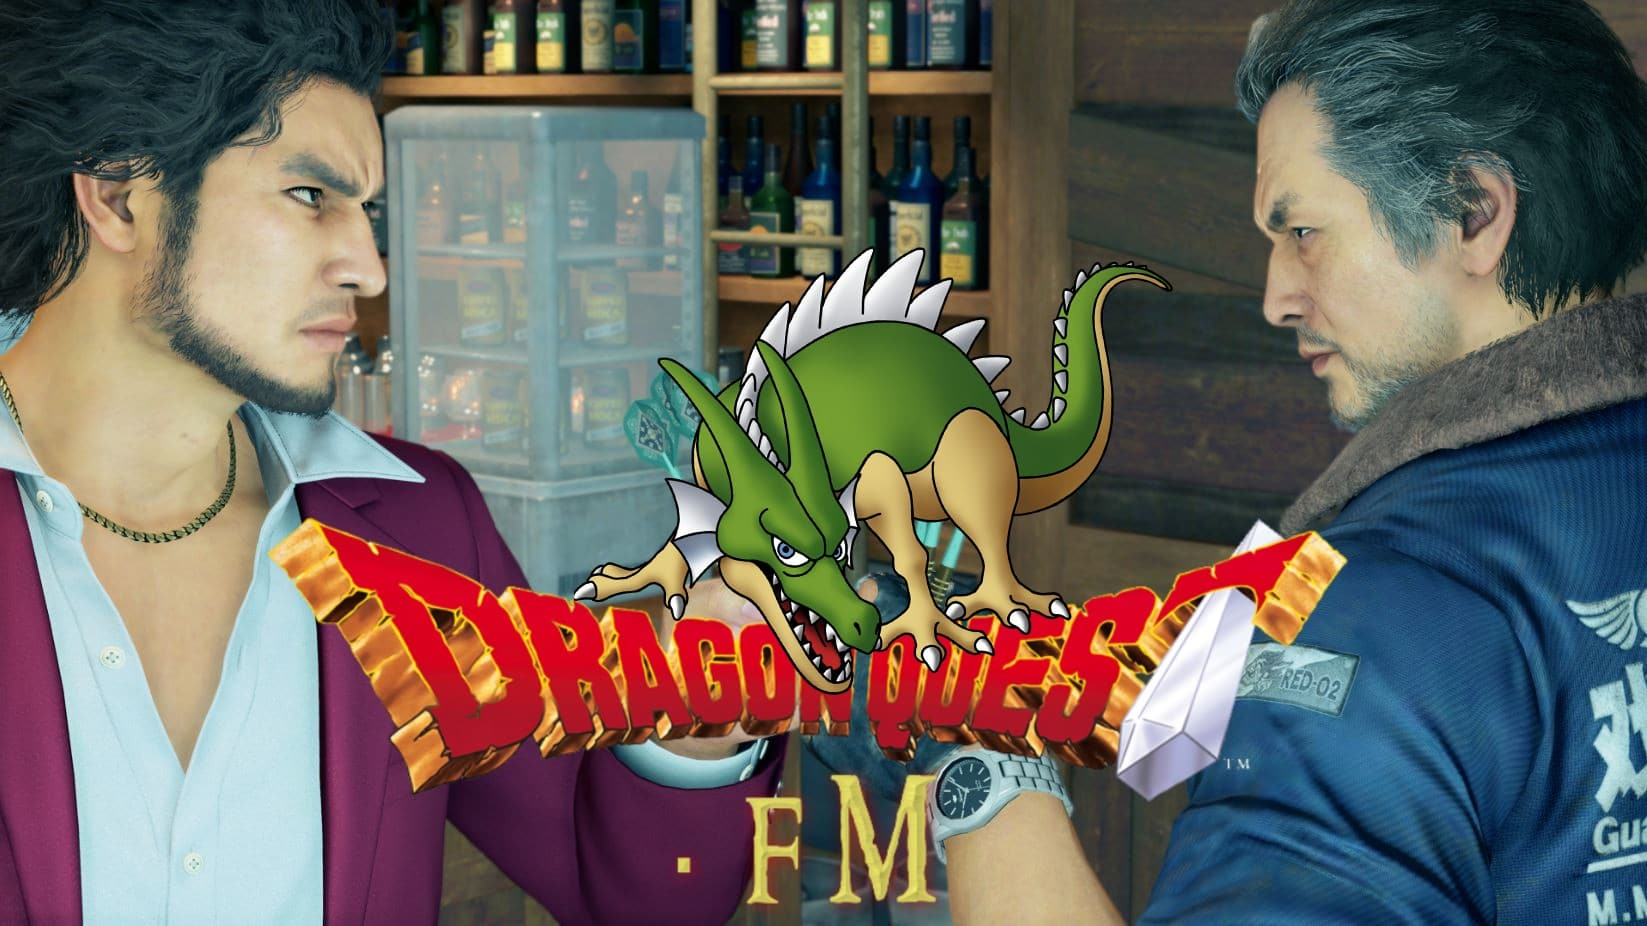 Dragon Quest FM, S2 E44 – Yakuza 7: Like A Dragon Quest For Gangsters